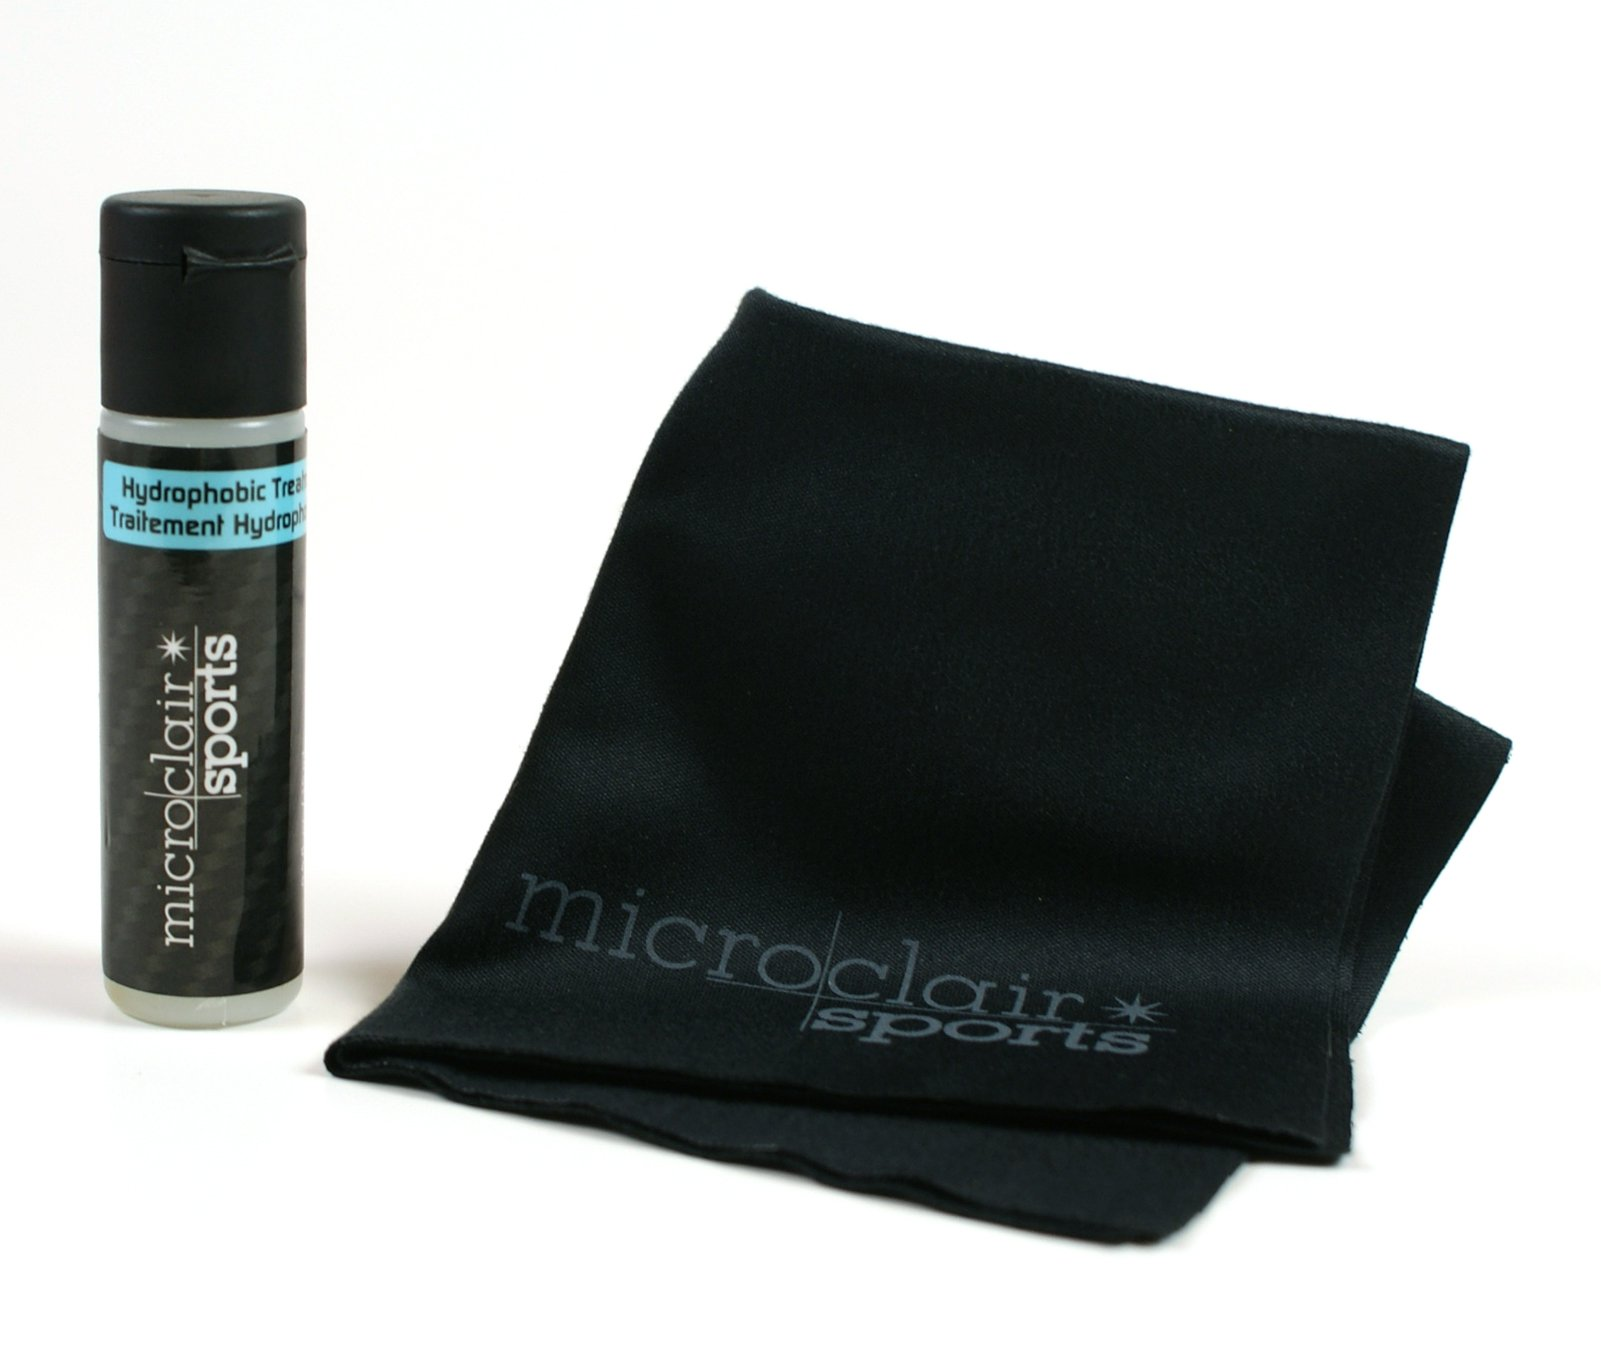 Microclair Sports Active Hydrophobic Treatment for Sports Glasses, Set with Microfiber Cloth